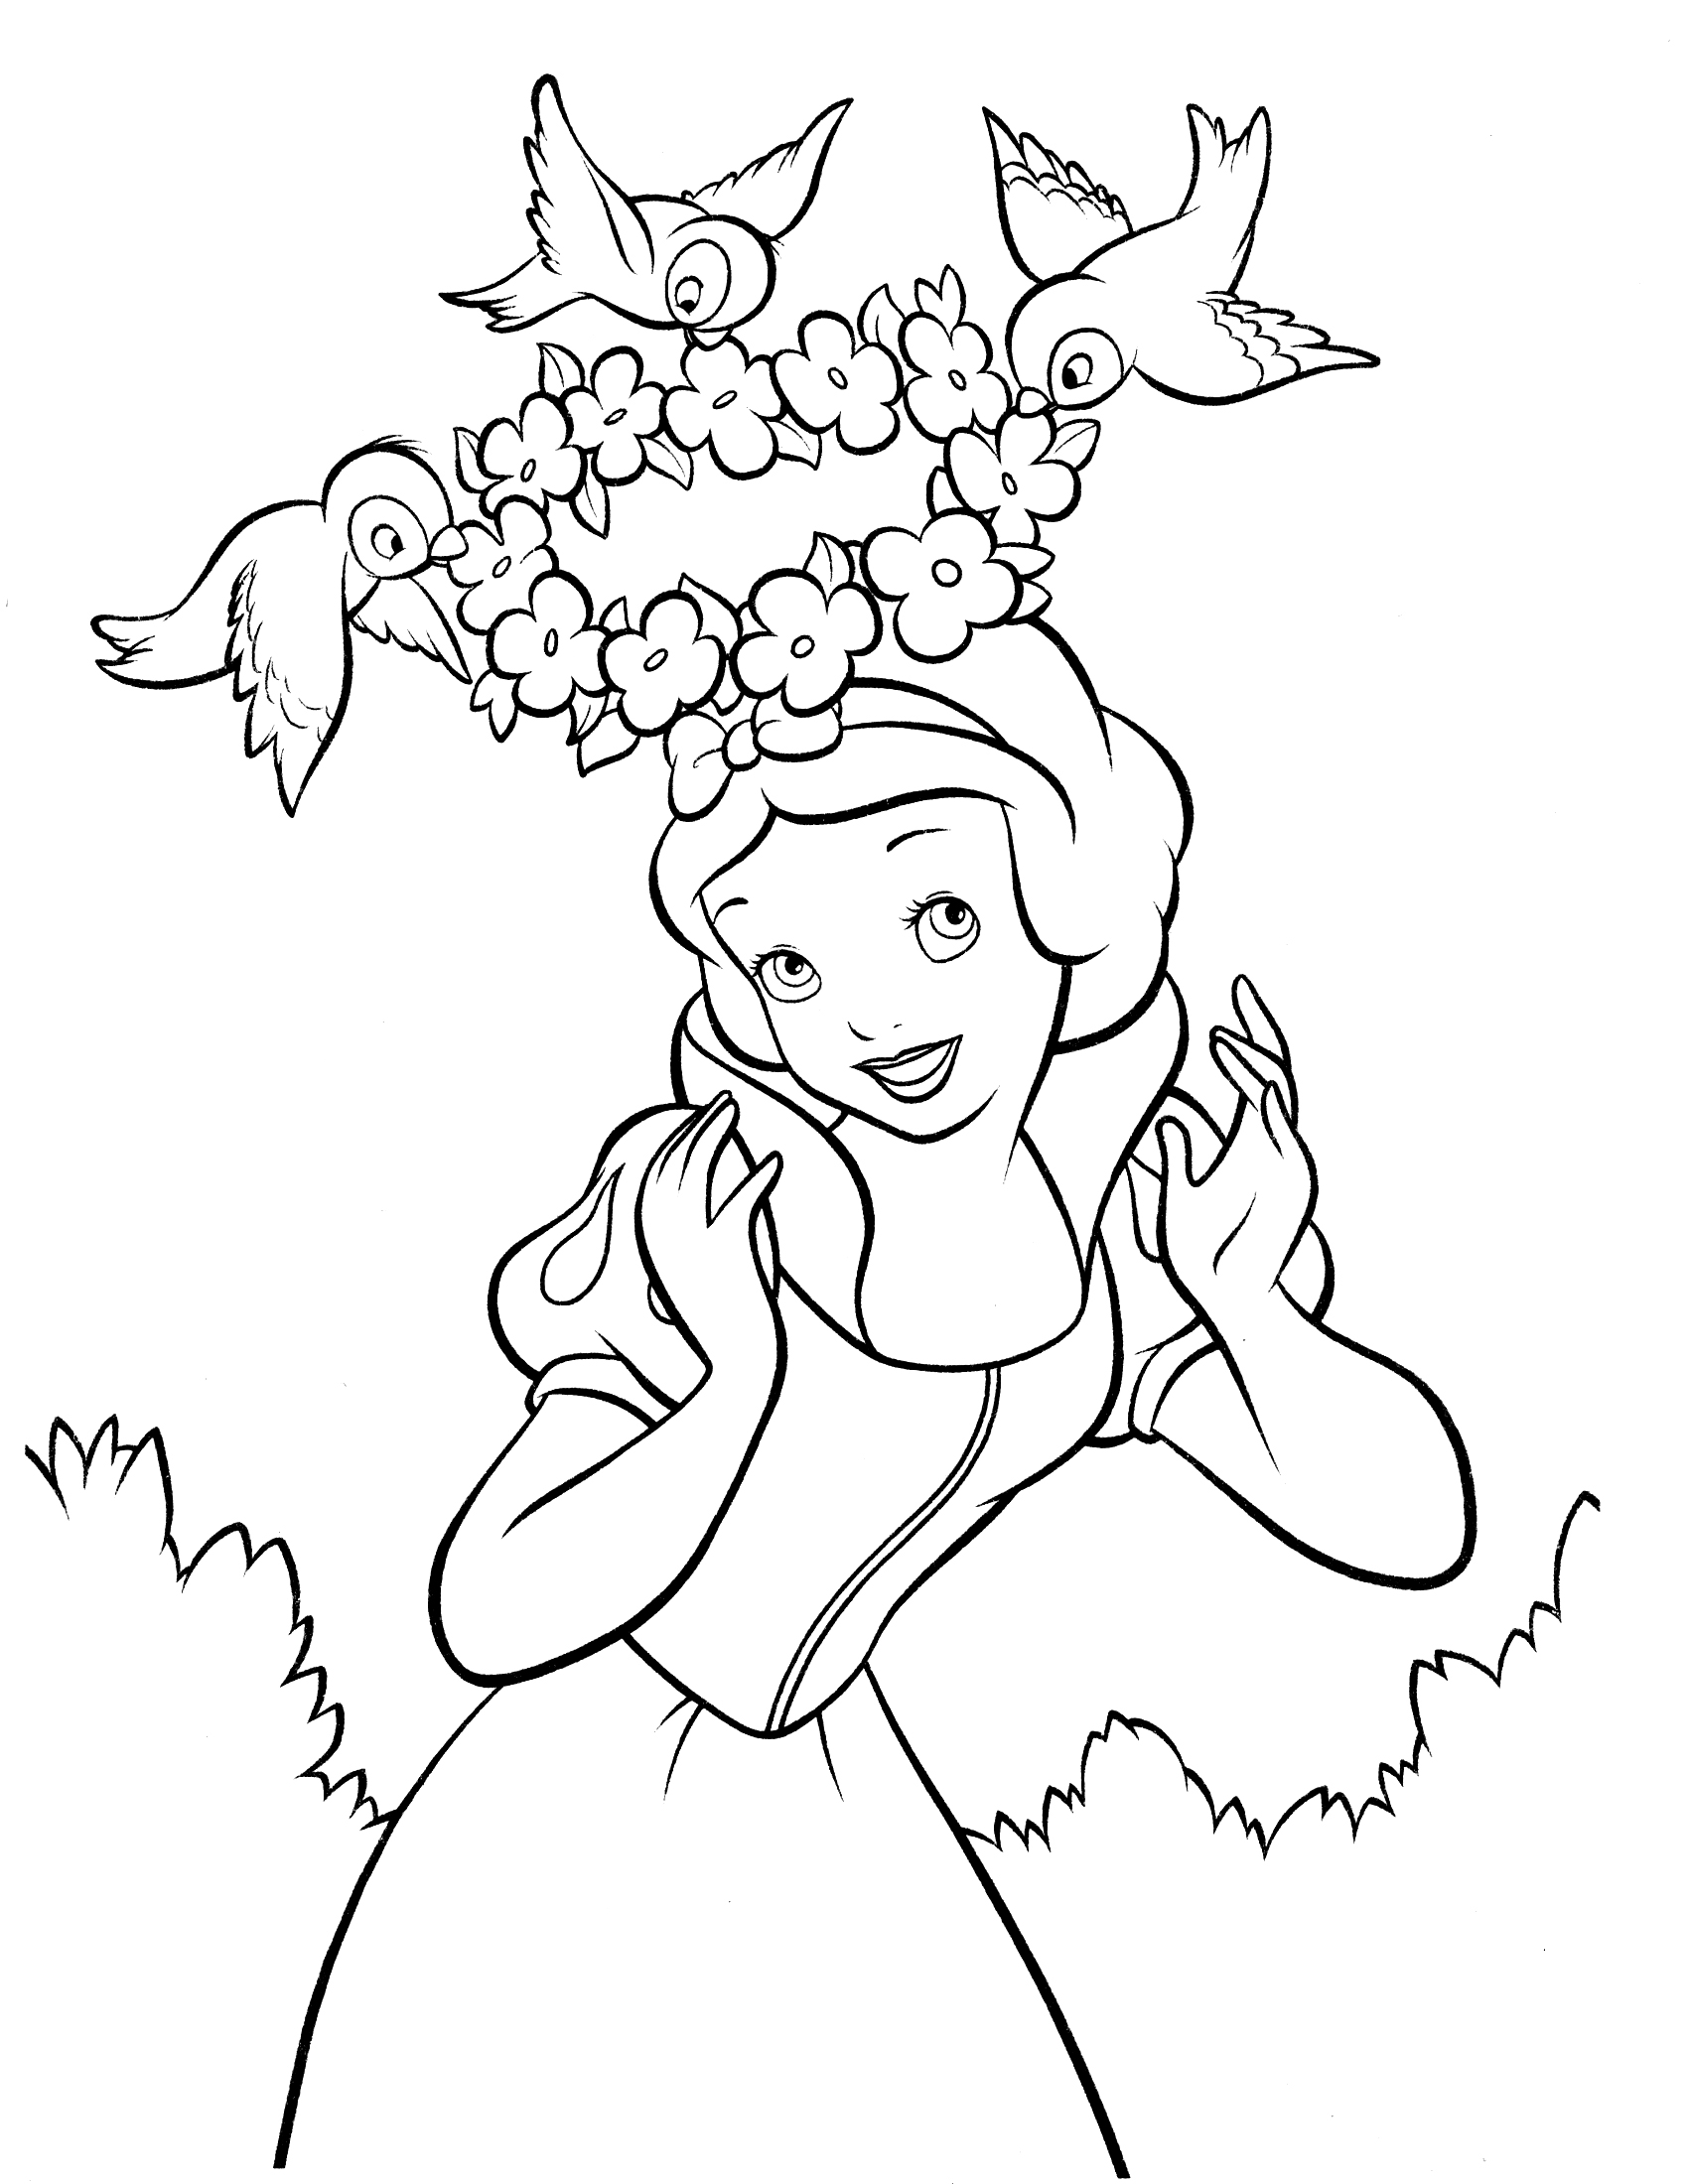 coloring snow white birds coloring page snow white and a bird snow white coloring birds